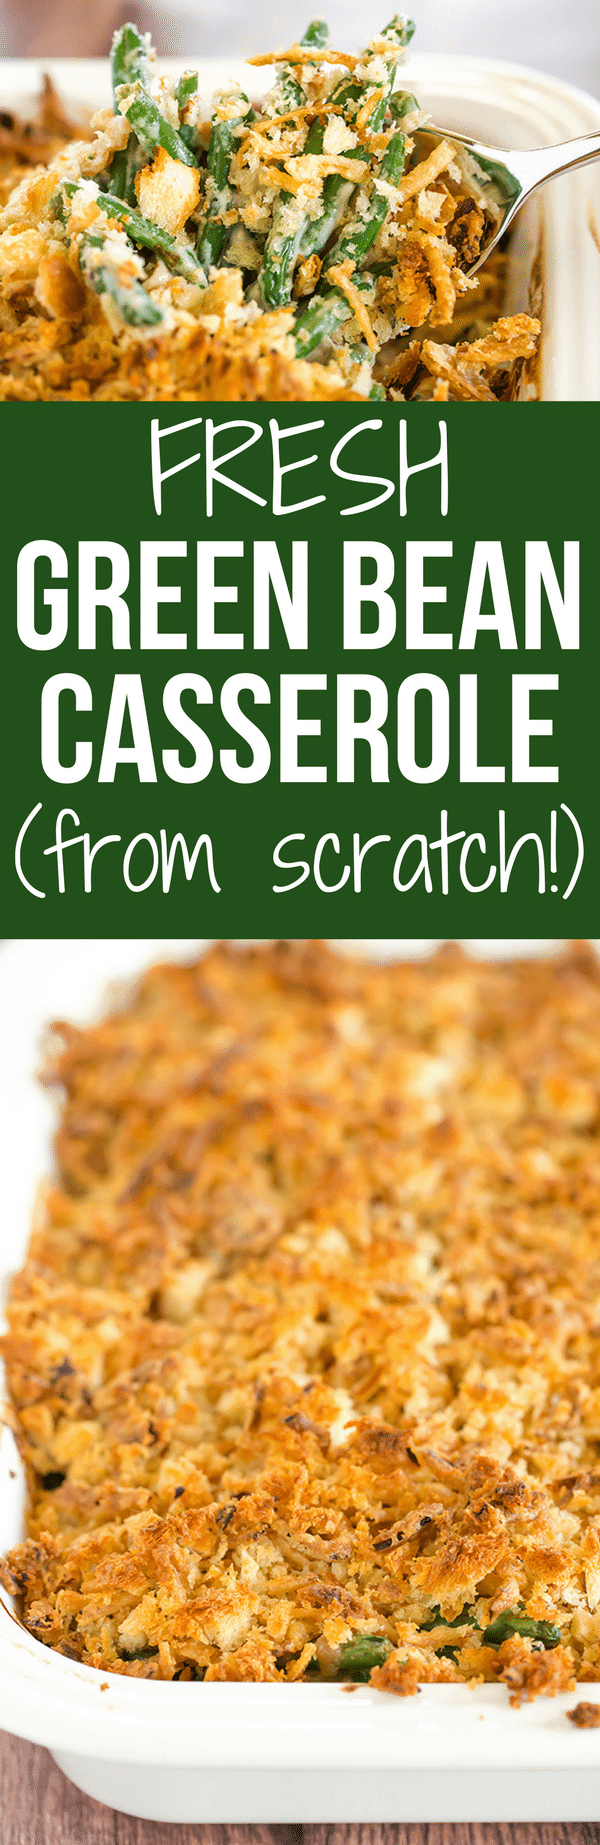 Green Bean Casserole FROM SCRATCH! A remake of the classic Thanksgiving side dish made with fresh green beans and no canned ingredients. | browneyedbaker.com